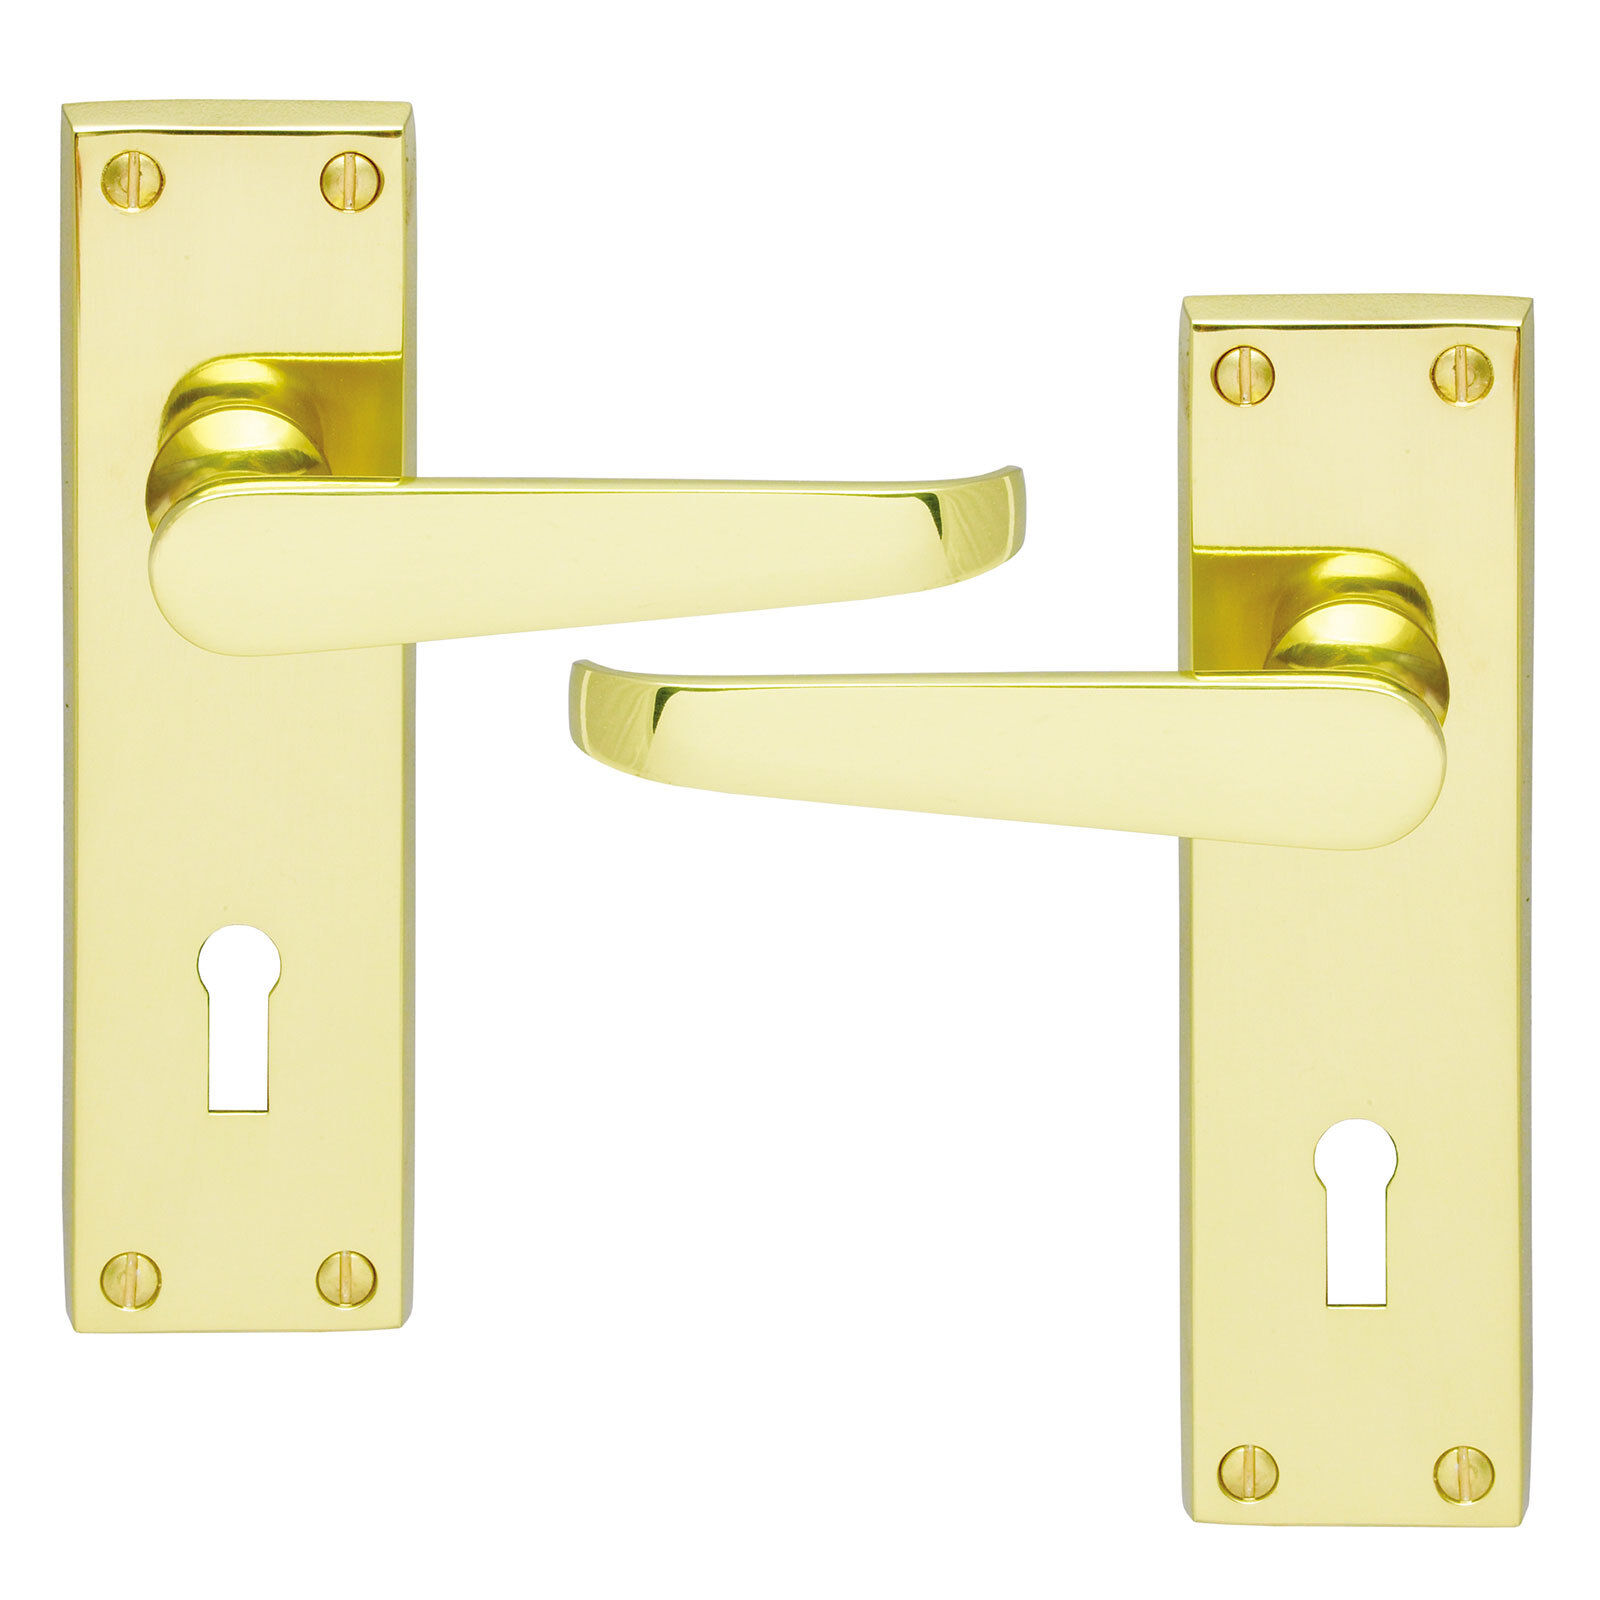 Lever Lock Door Handles Pair Brass Finish Domestic Commercial Use